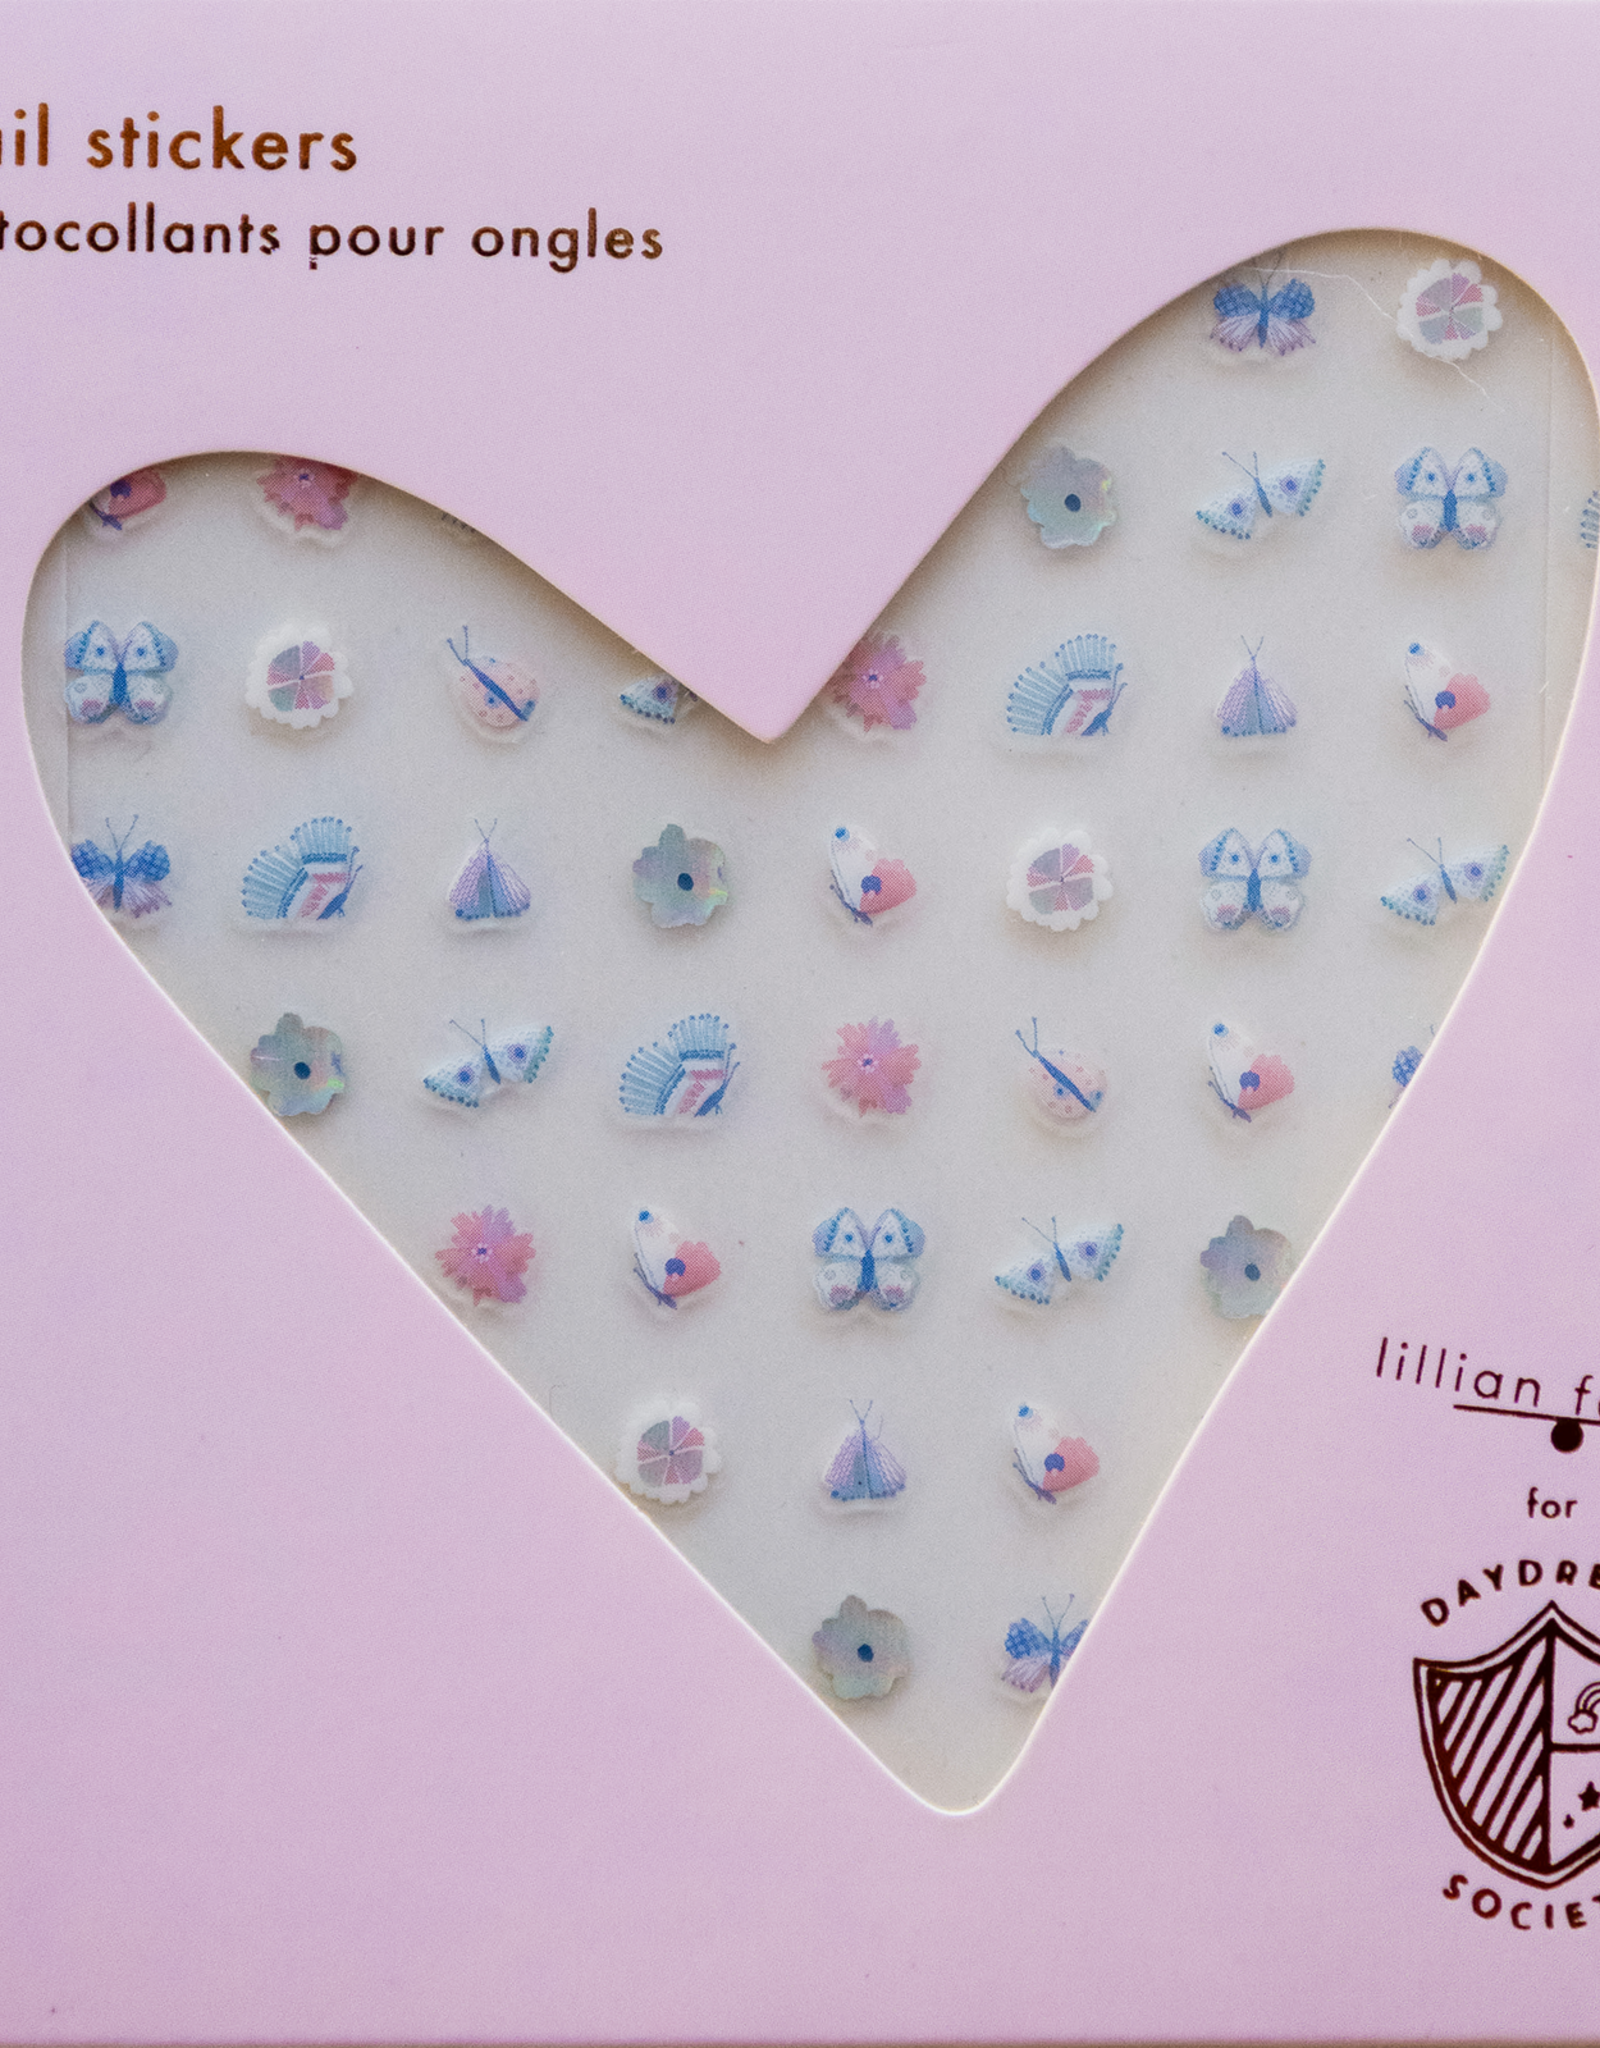 daydream society Flutter Nail Stickers